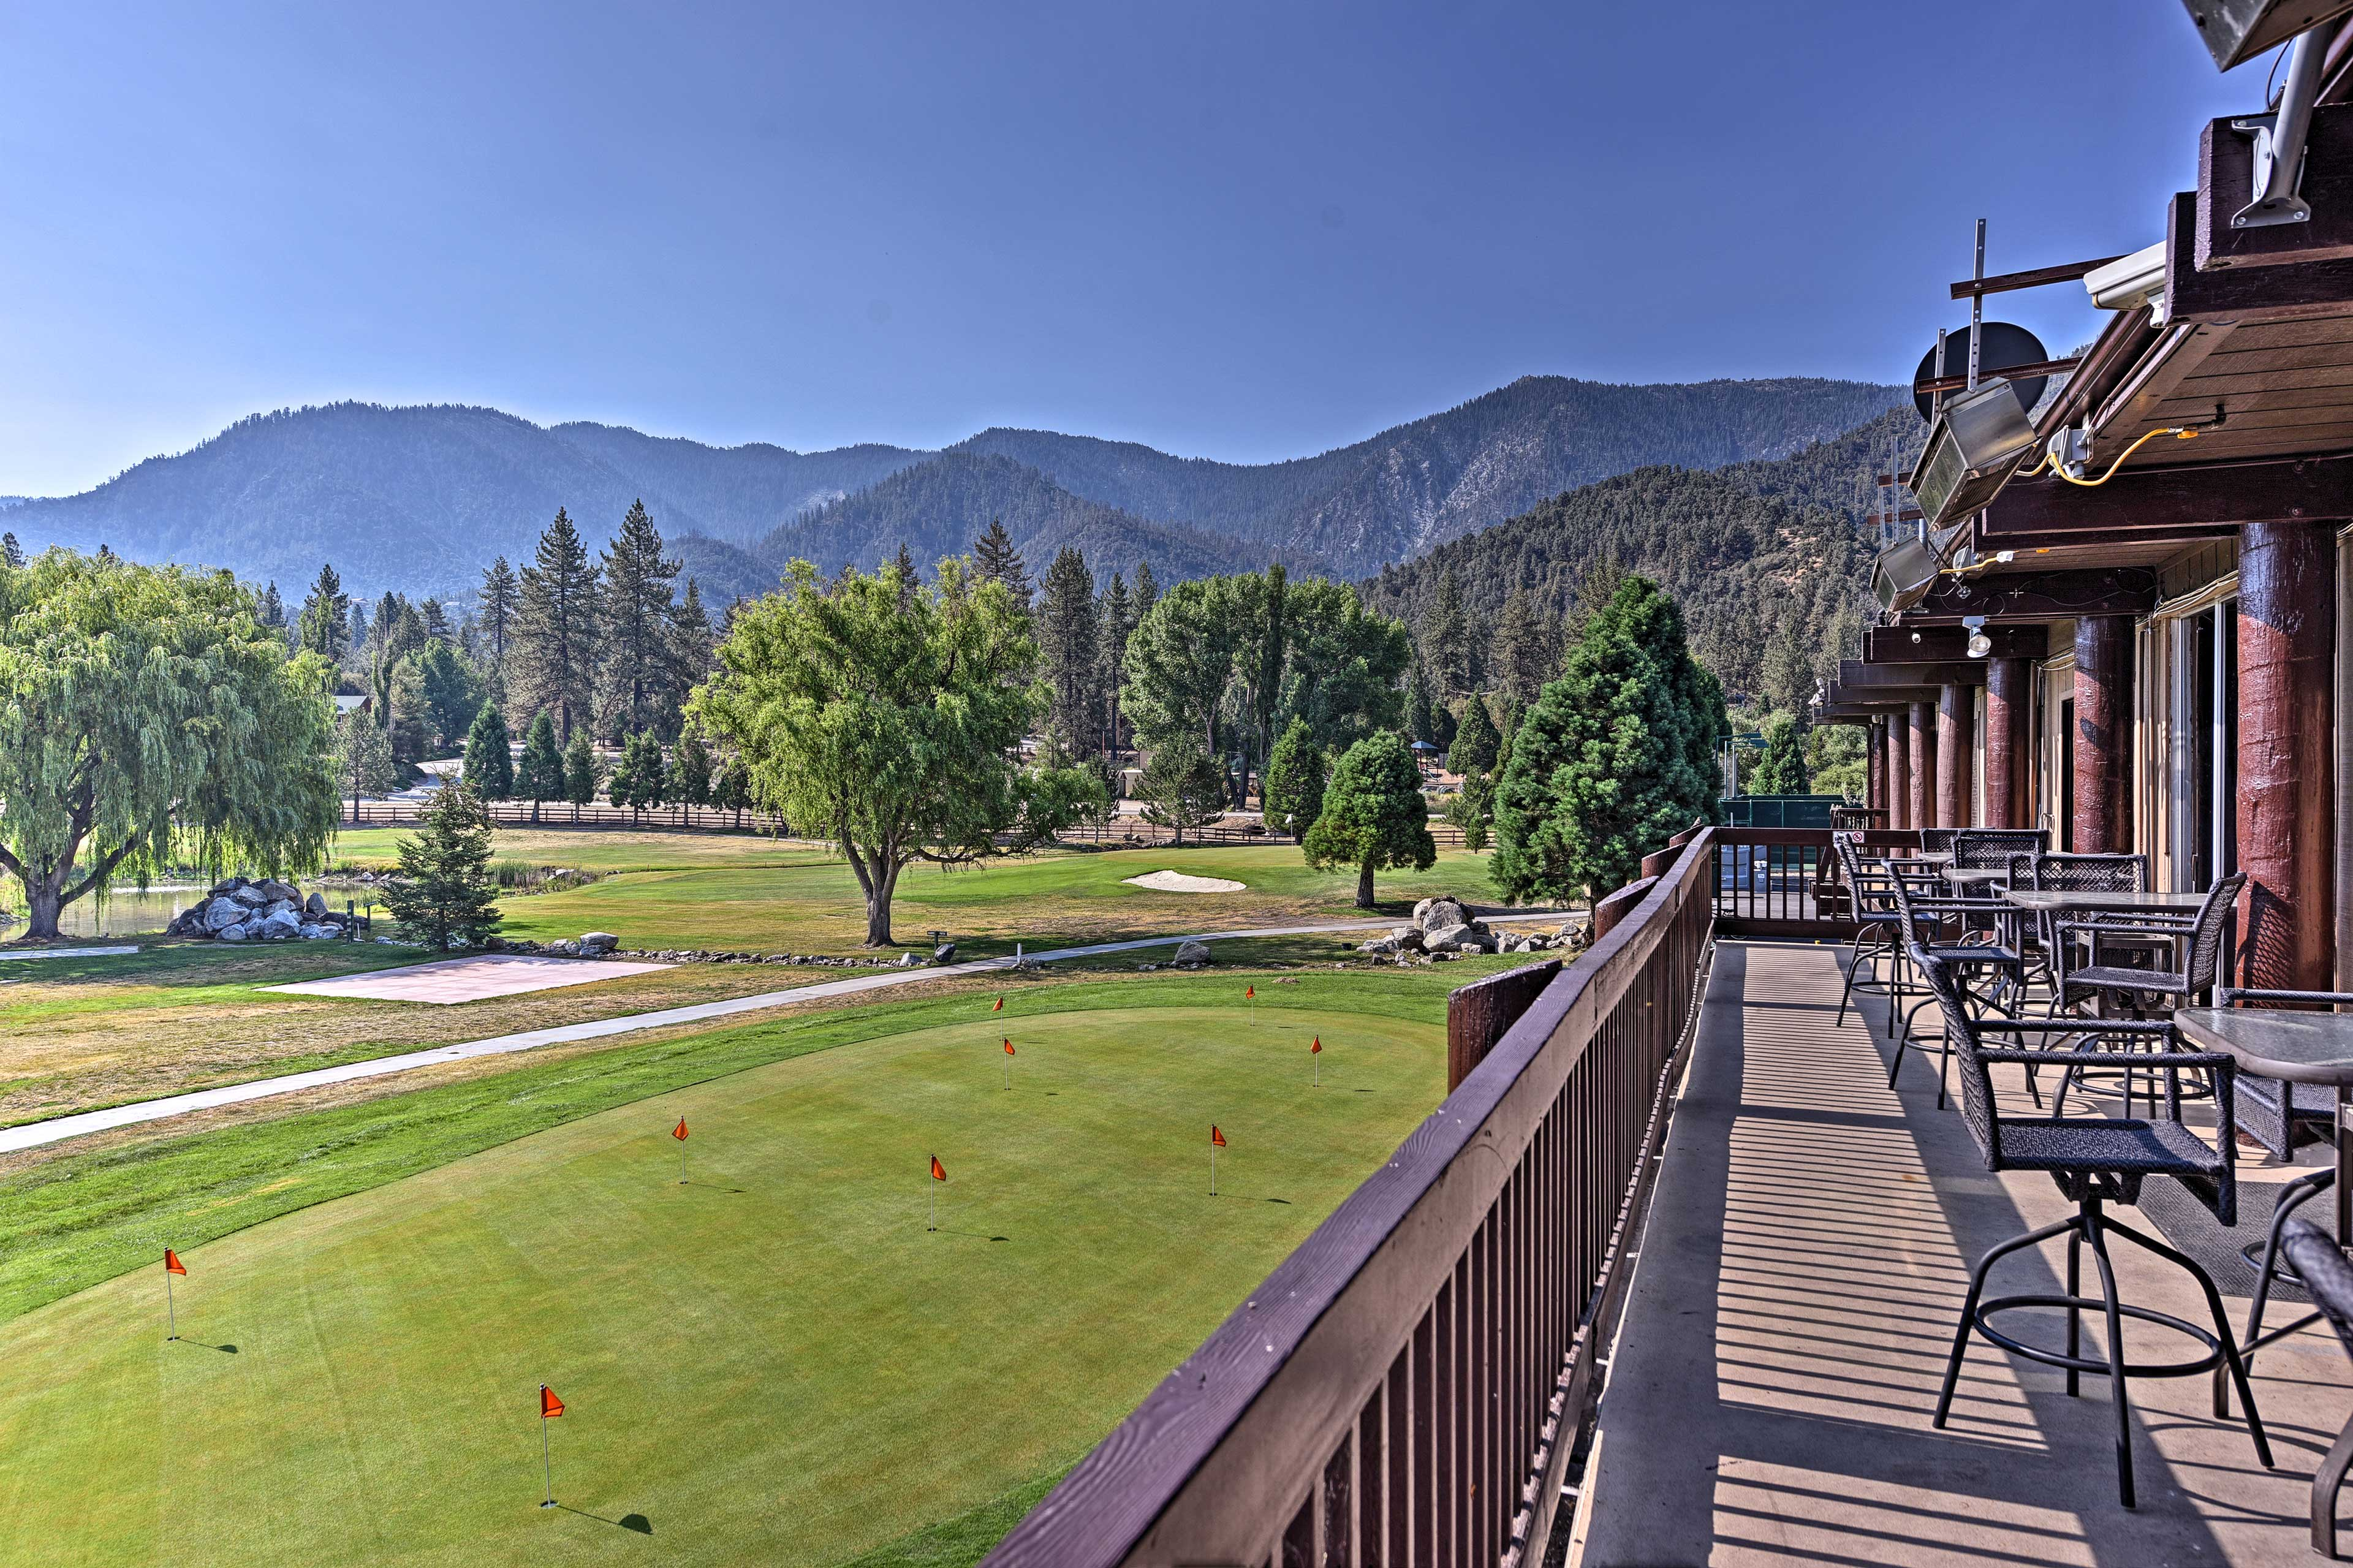 The community's golf course offers perfect views of the surrounding mountains.